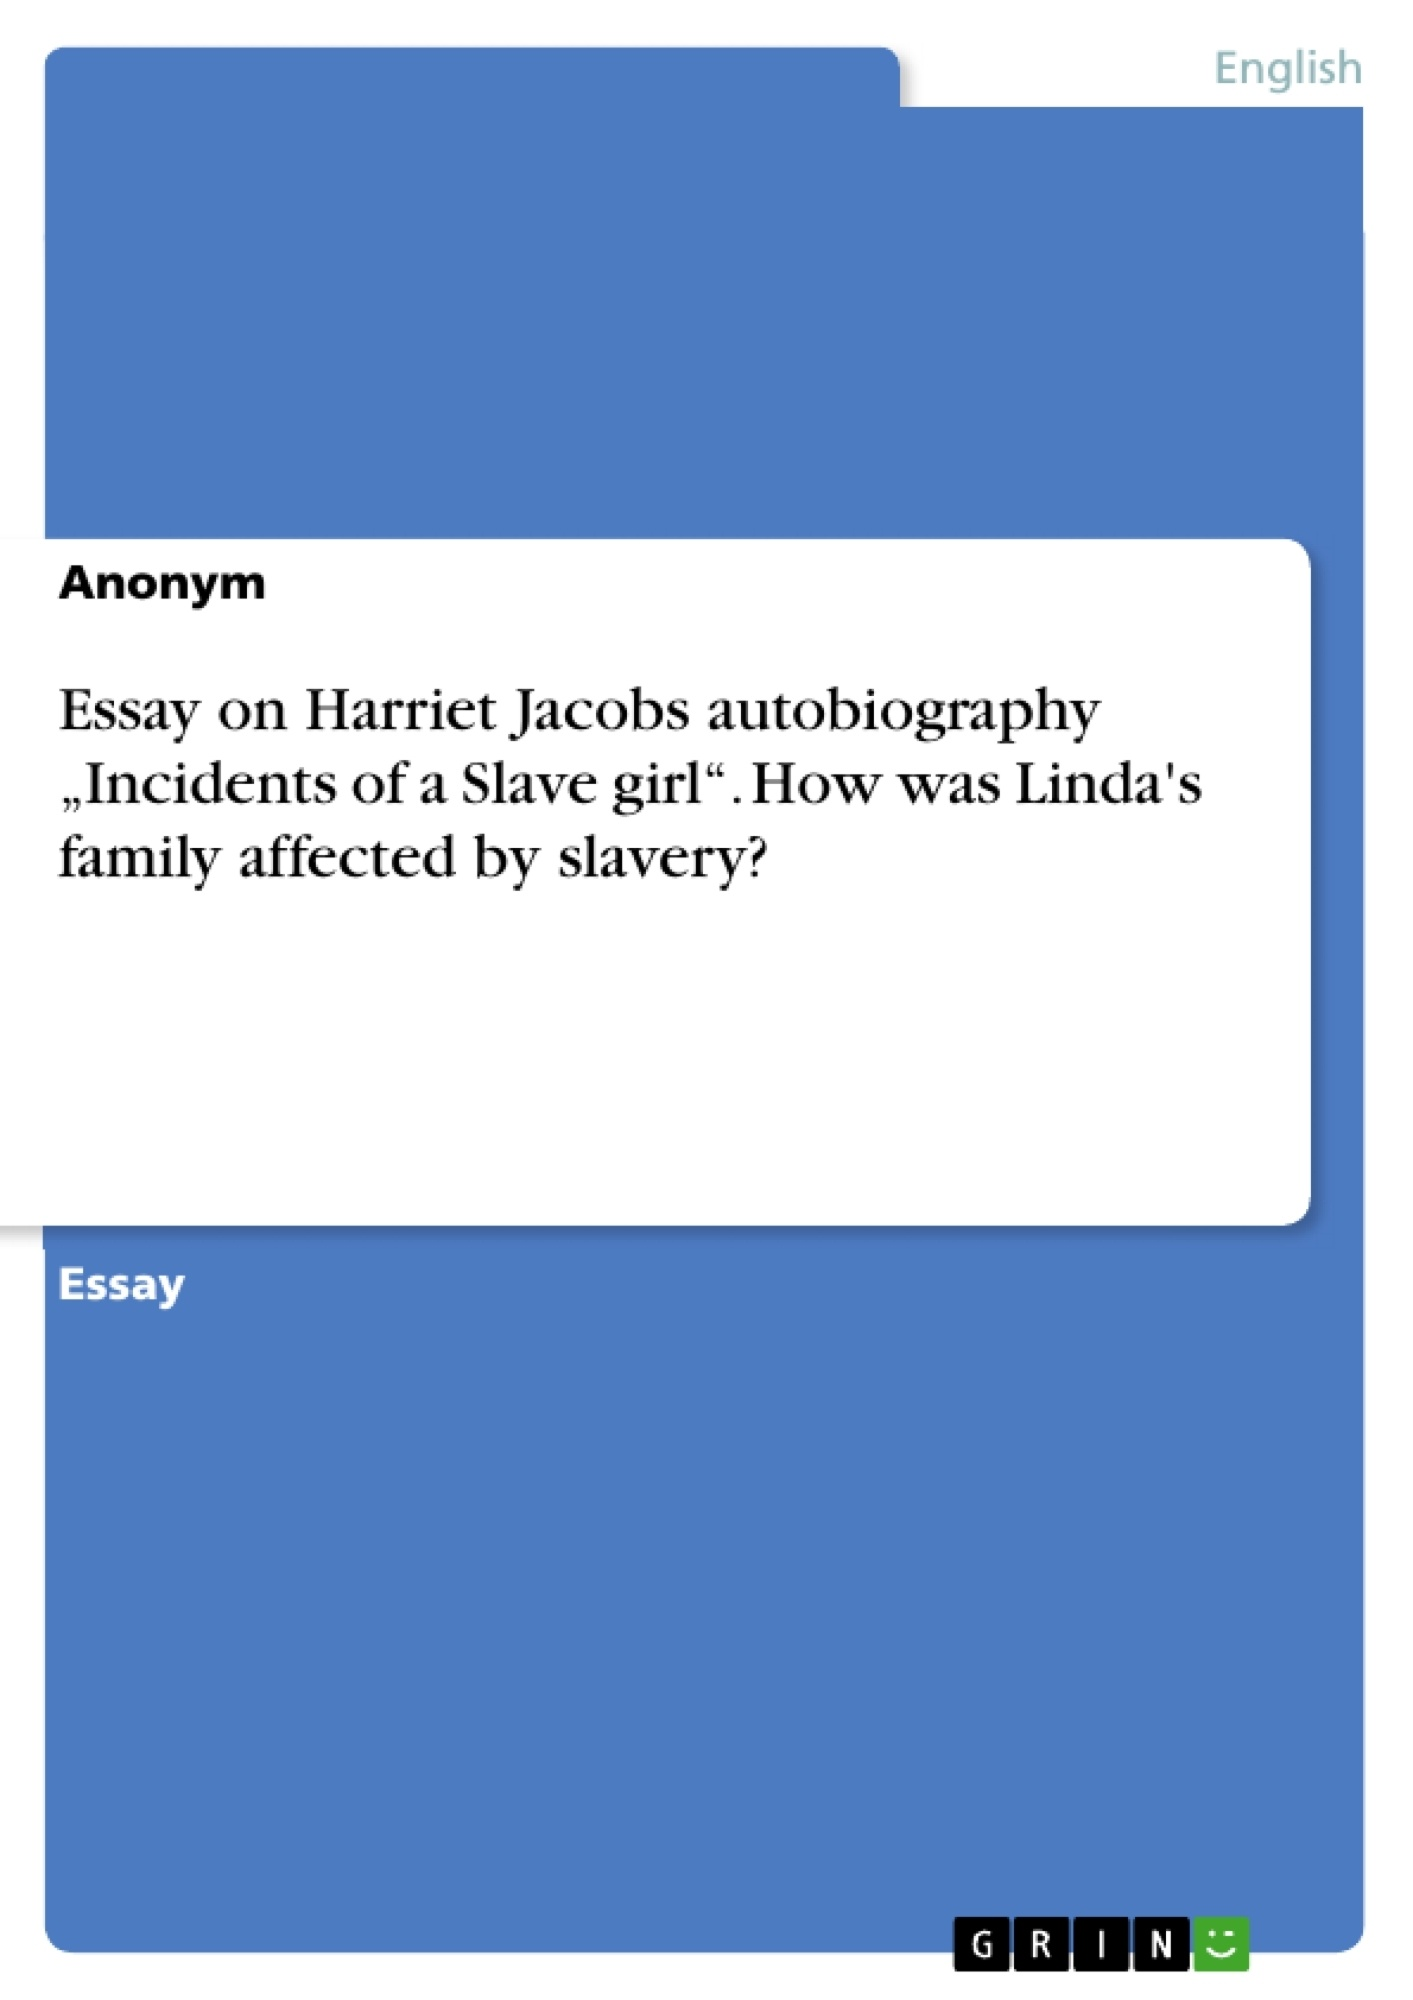 """Title: Essay on Harriet Jacobs autobiography """"Incidents of a Slave girl"""". How was Linda's family affected by slavery?"""